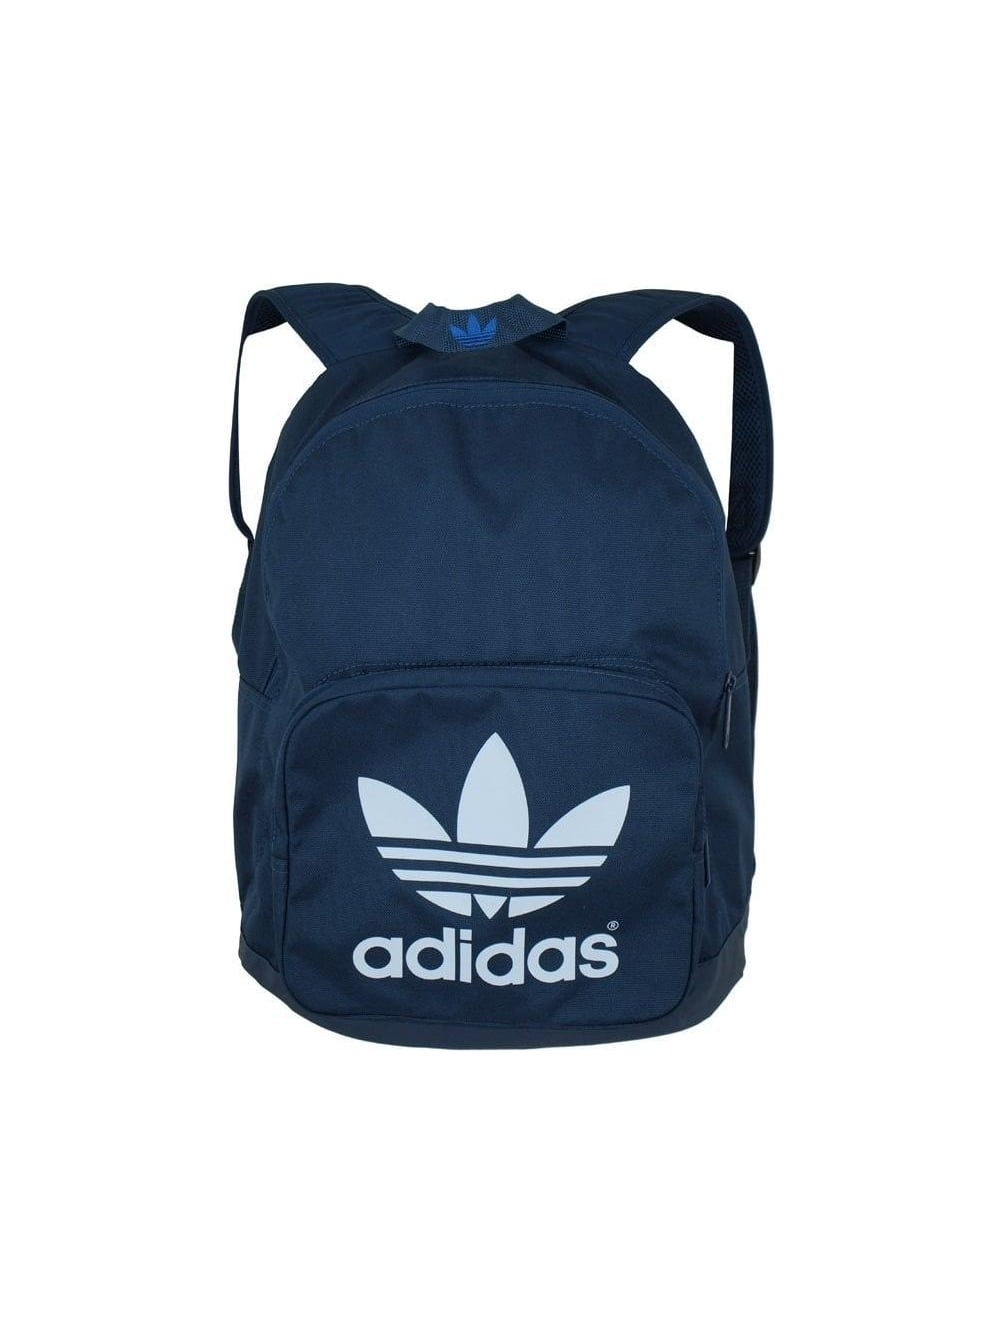 15ecc965f3 Adidas Originals AC Classic Backpack in Solid Blue - Northern Threads